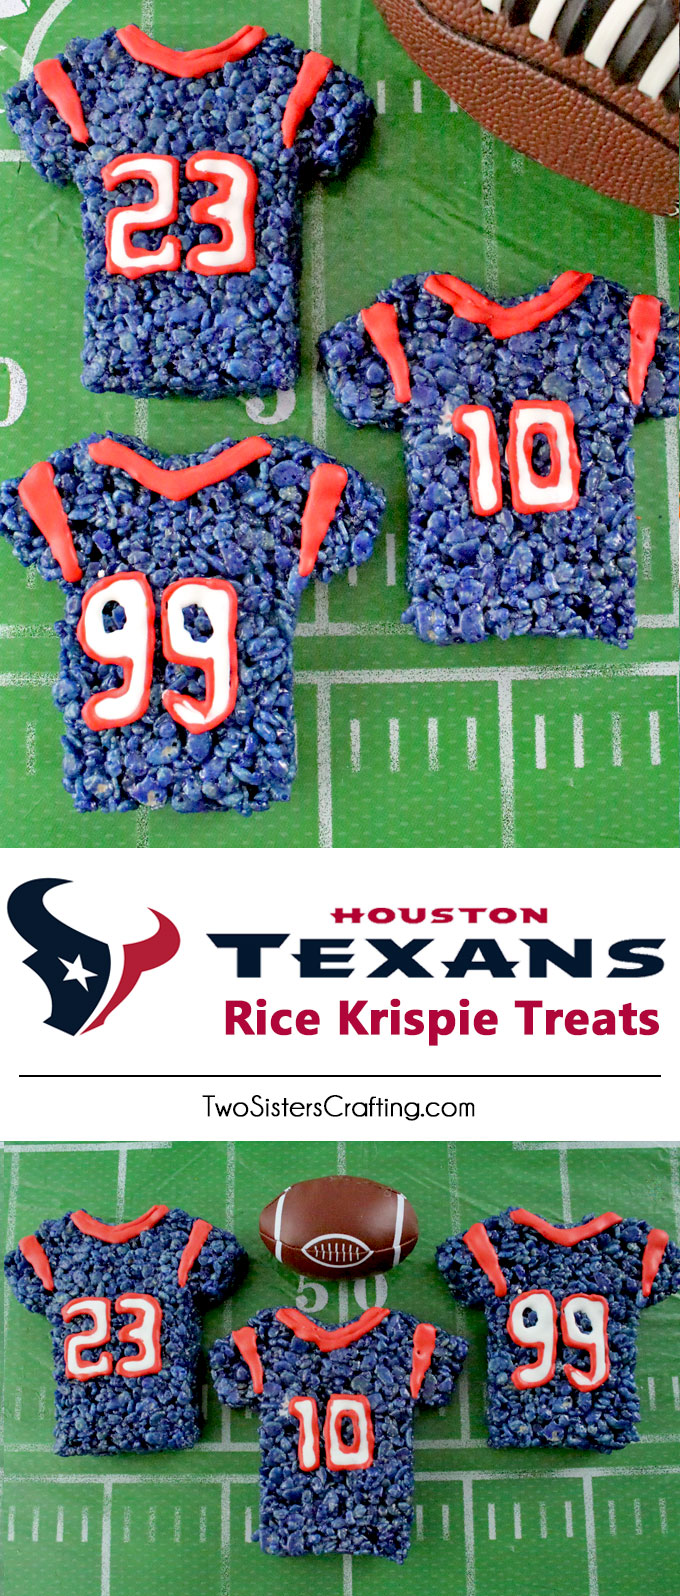 These Houston Texans Rice Krispie Treats Team Jerseys are a fun football dessert for a game day football party, an NFL playoff party, a Super Bowl party or as a special snack for the Houston Texans fans in your life. Go Texans! And follow us for more fun Super Bowl Food Ideas.